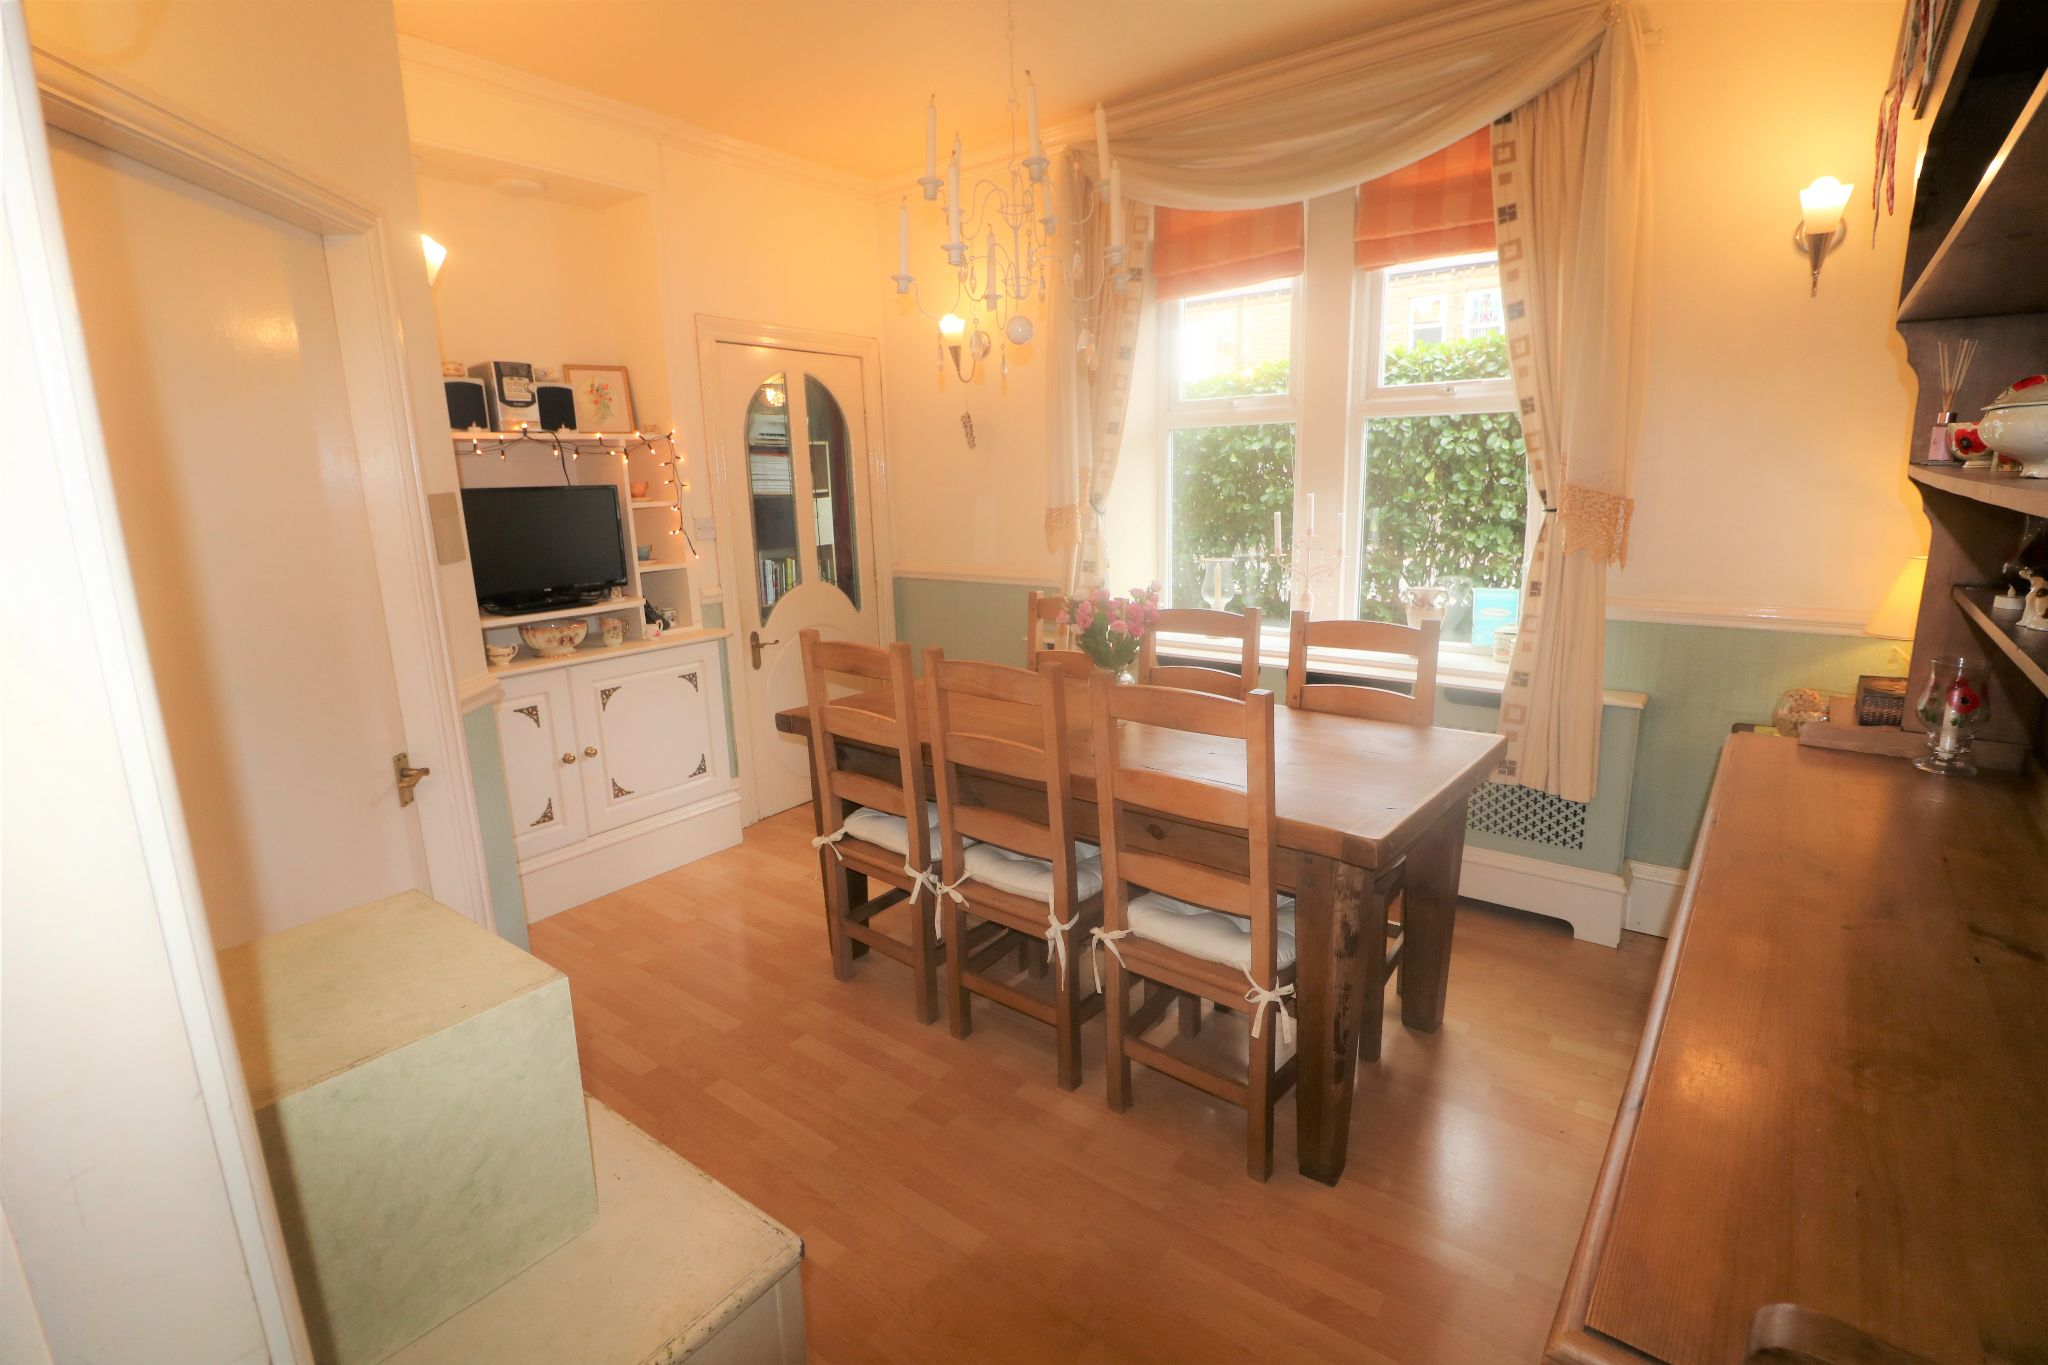 4 Bedroom End Terraced House For Sale - Photograph 5